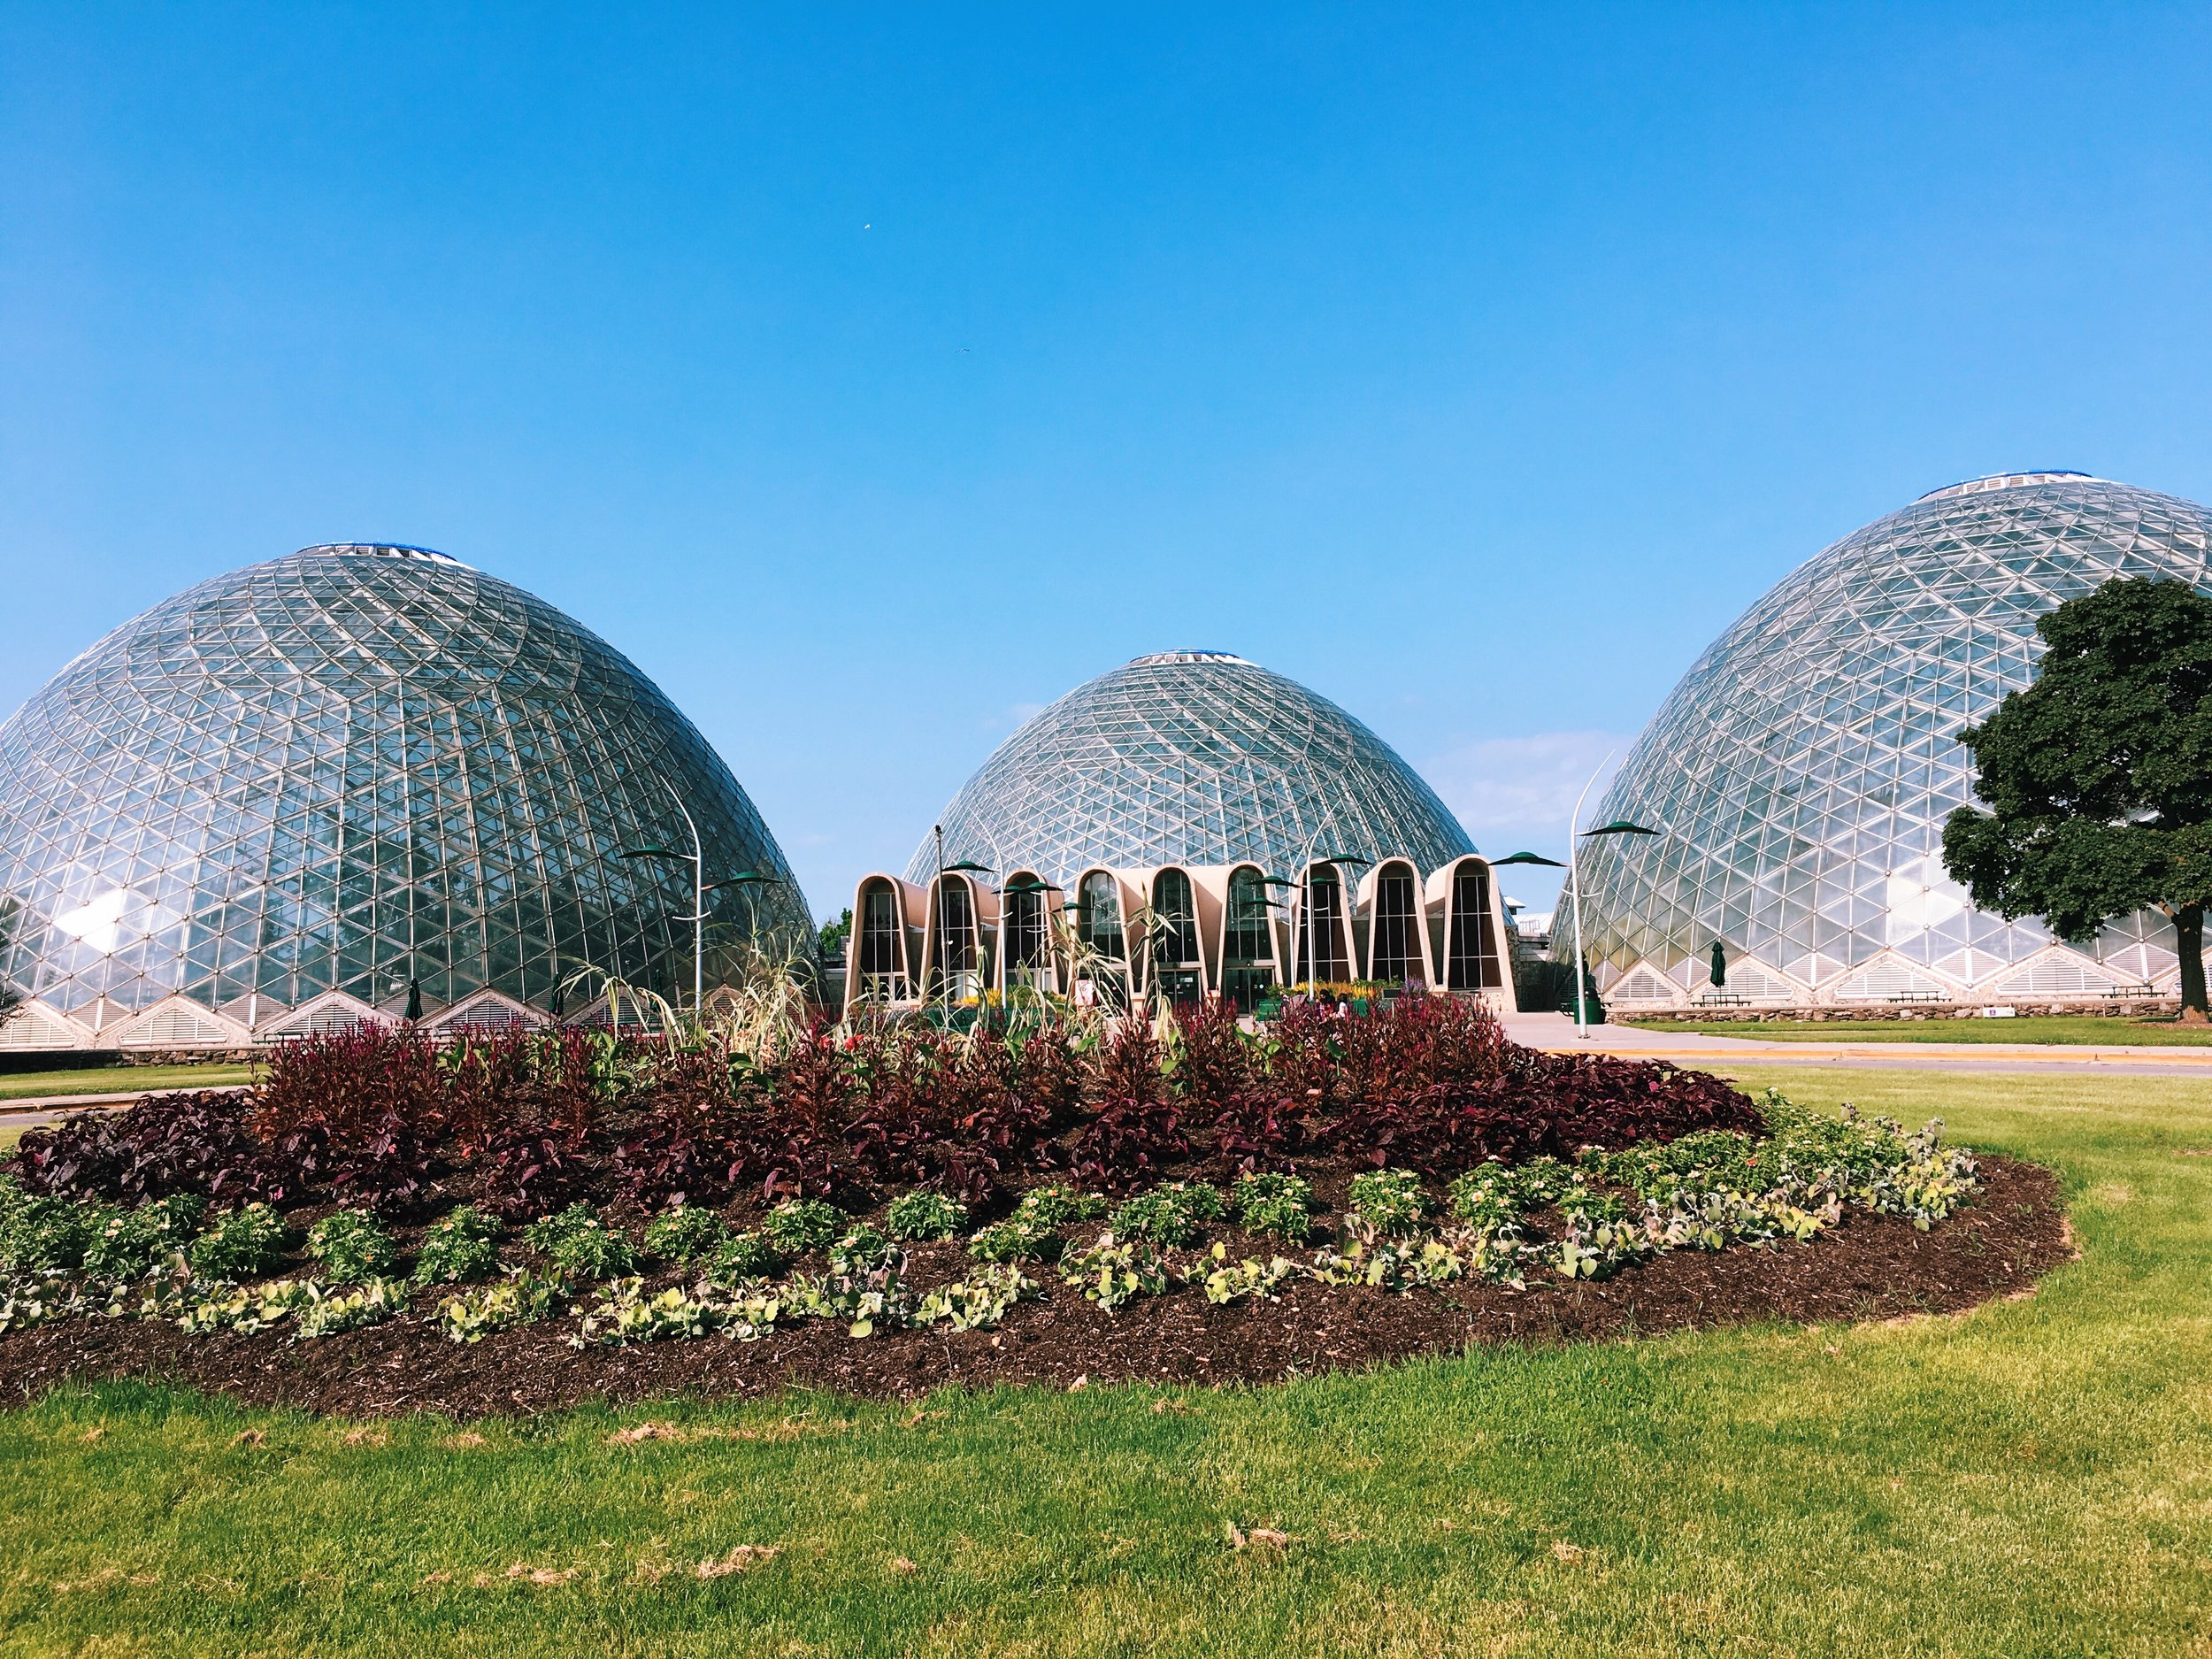 Mitchell Park Domes- Photography by Pryscilla Balladares